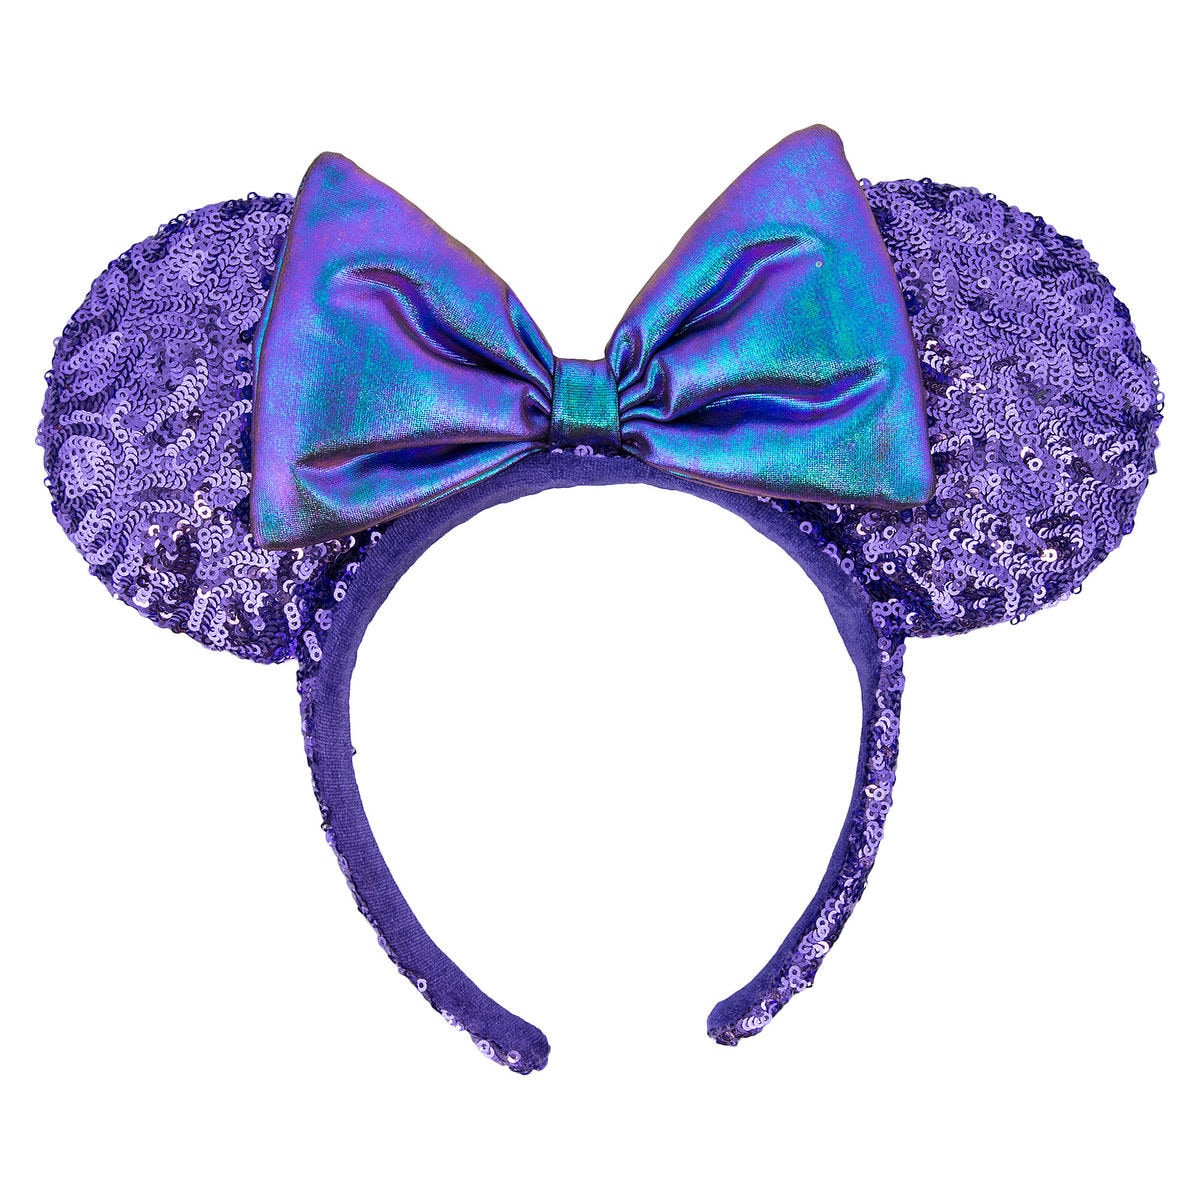 d462dedec5156 Product Image of Minnie Mouse Potion Purple Ear Headband   1